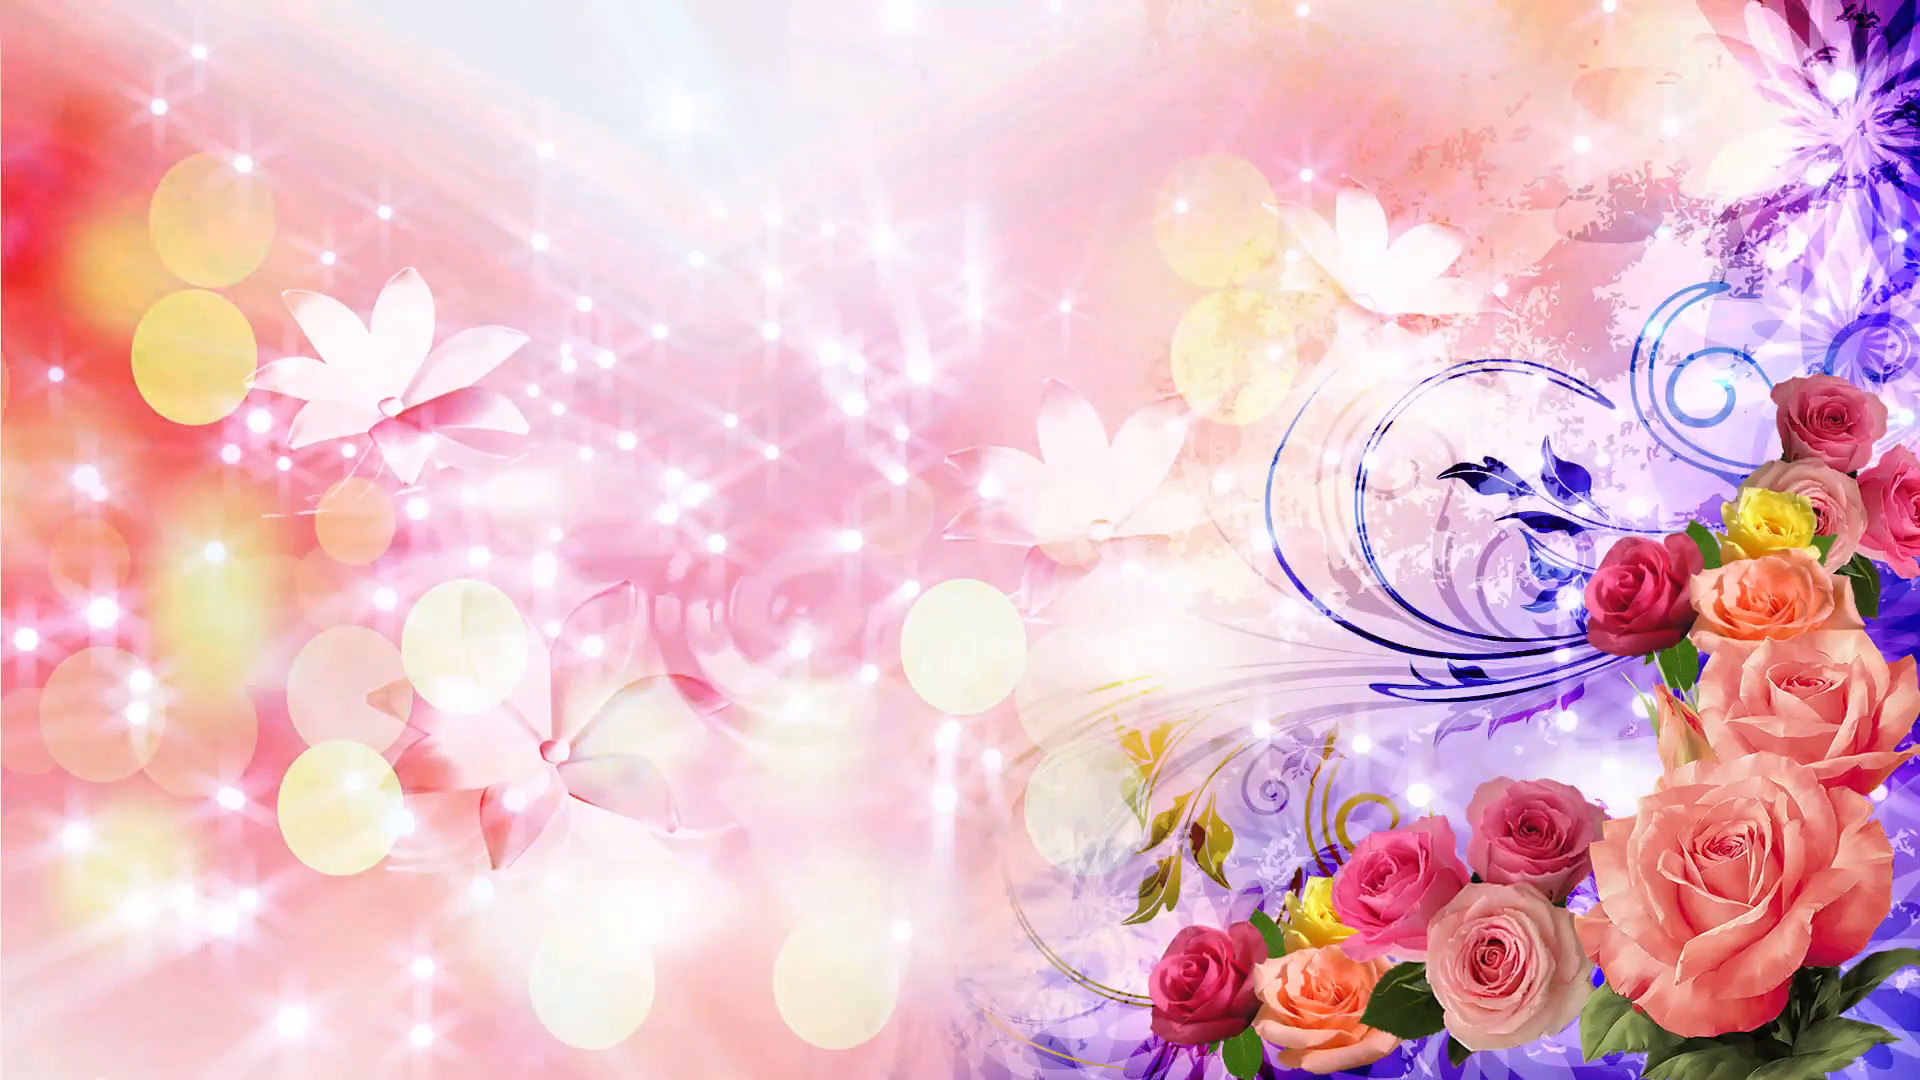 Pink Flowers Marriage Background Hd Png 1920x1080 Download Hd Wallpaper Wallpapertip